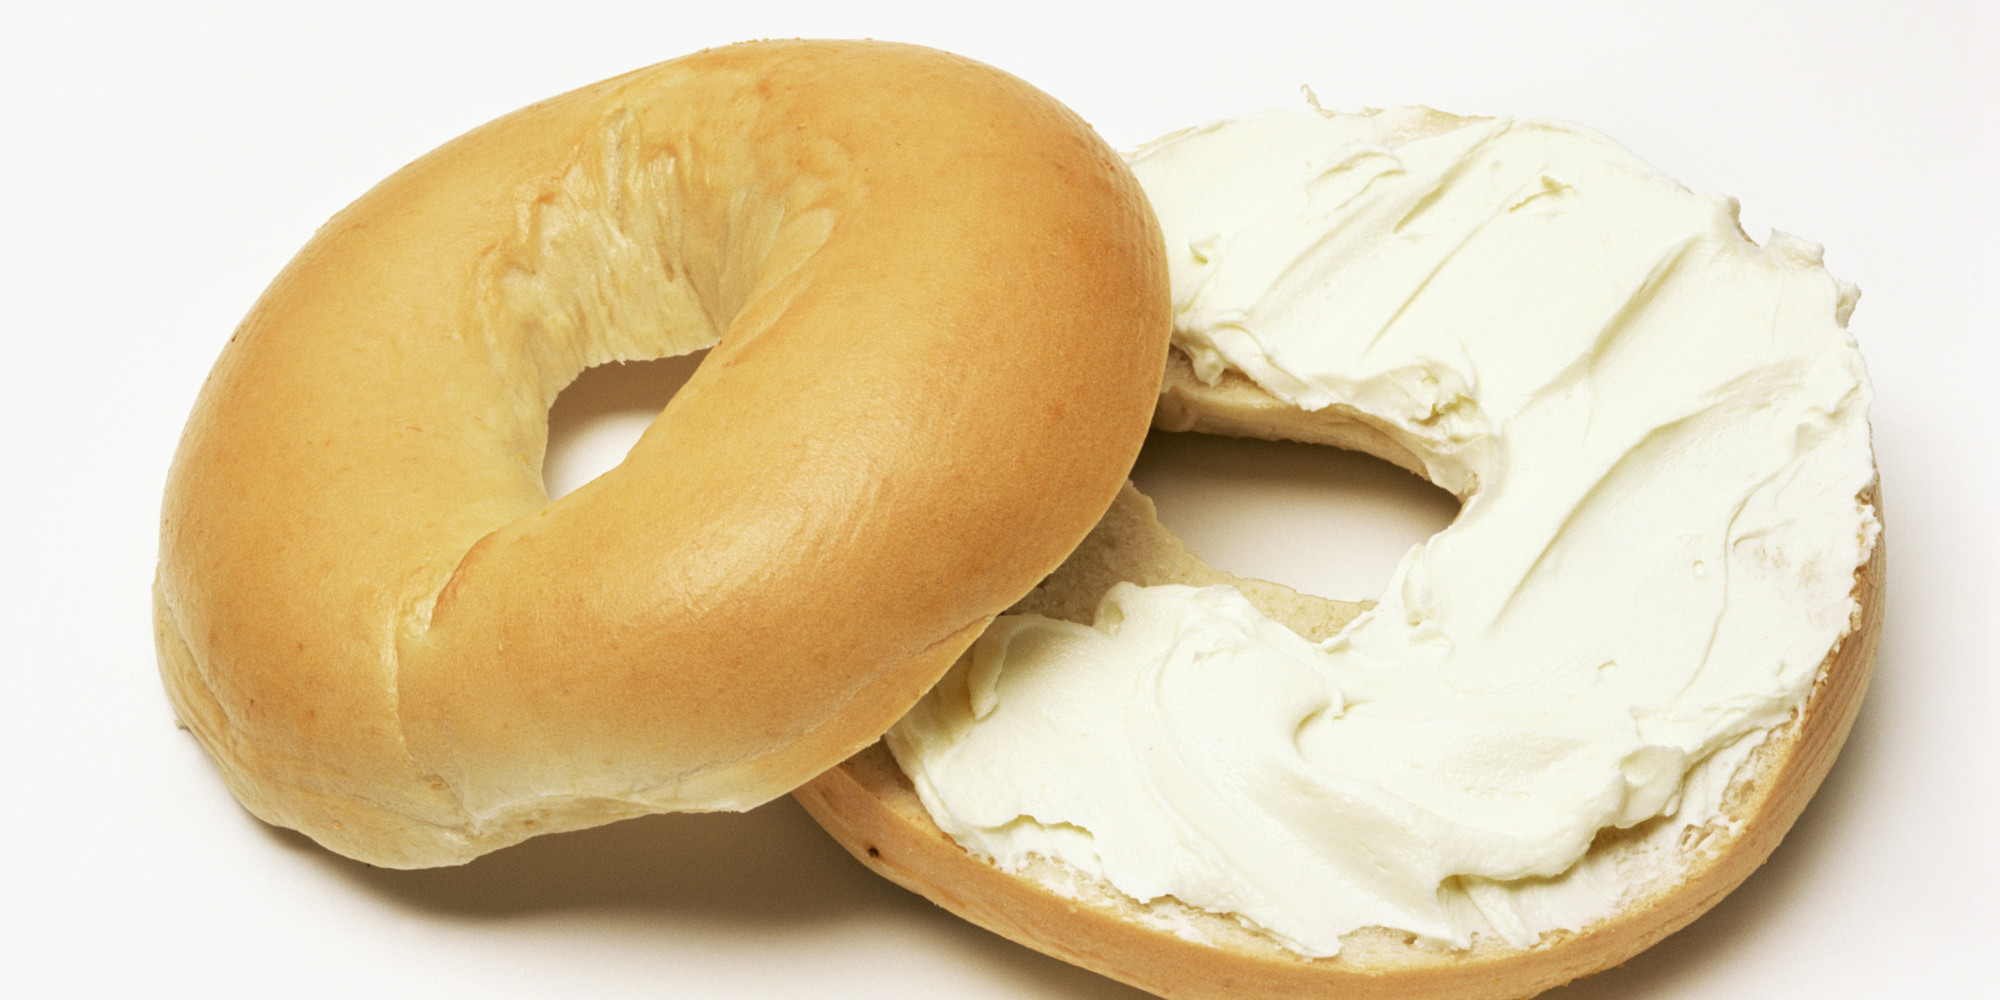 12 Bagel And Cream Cheese Flavors That Shouldn't Exist